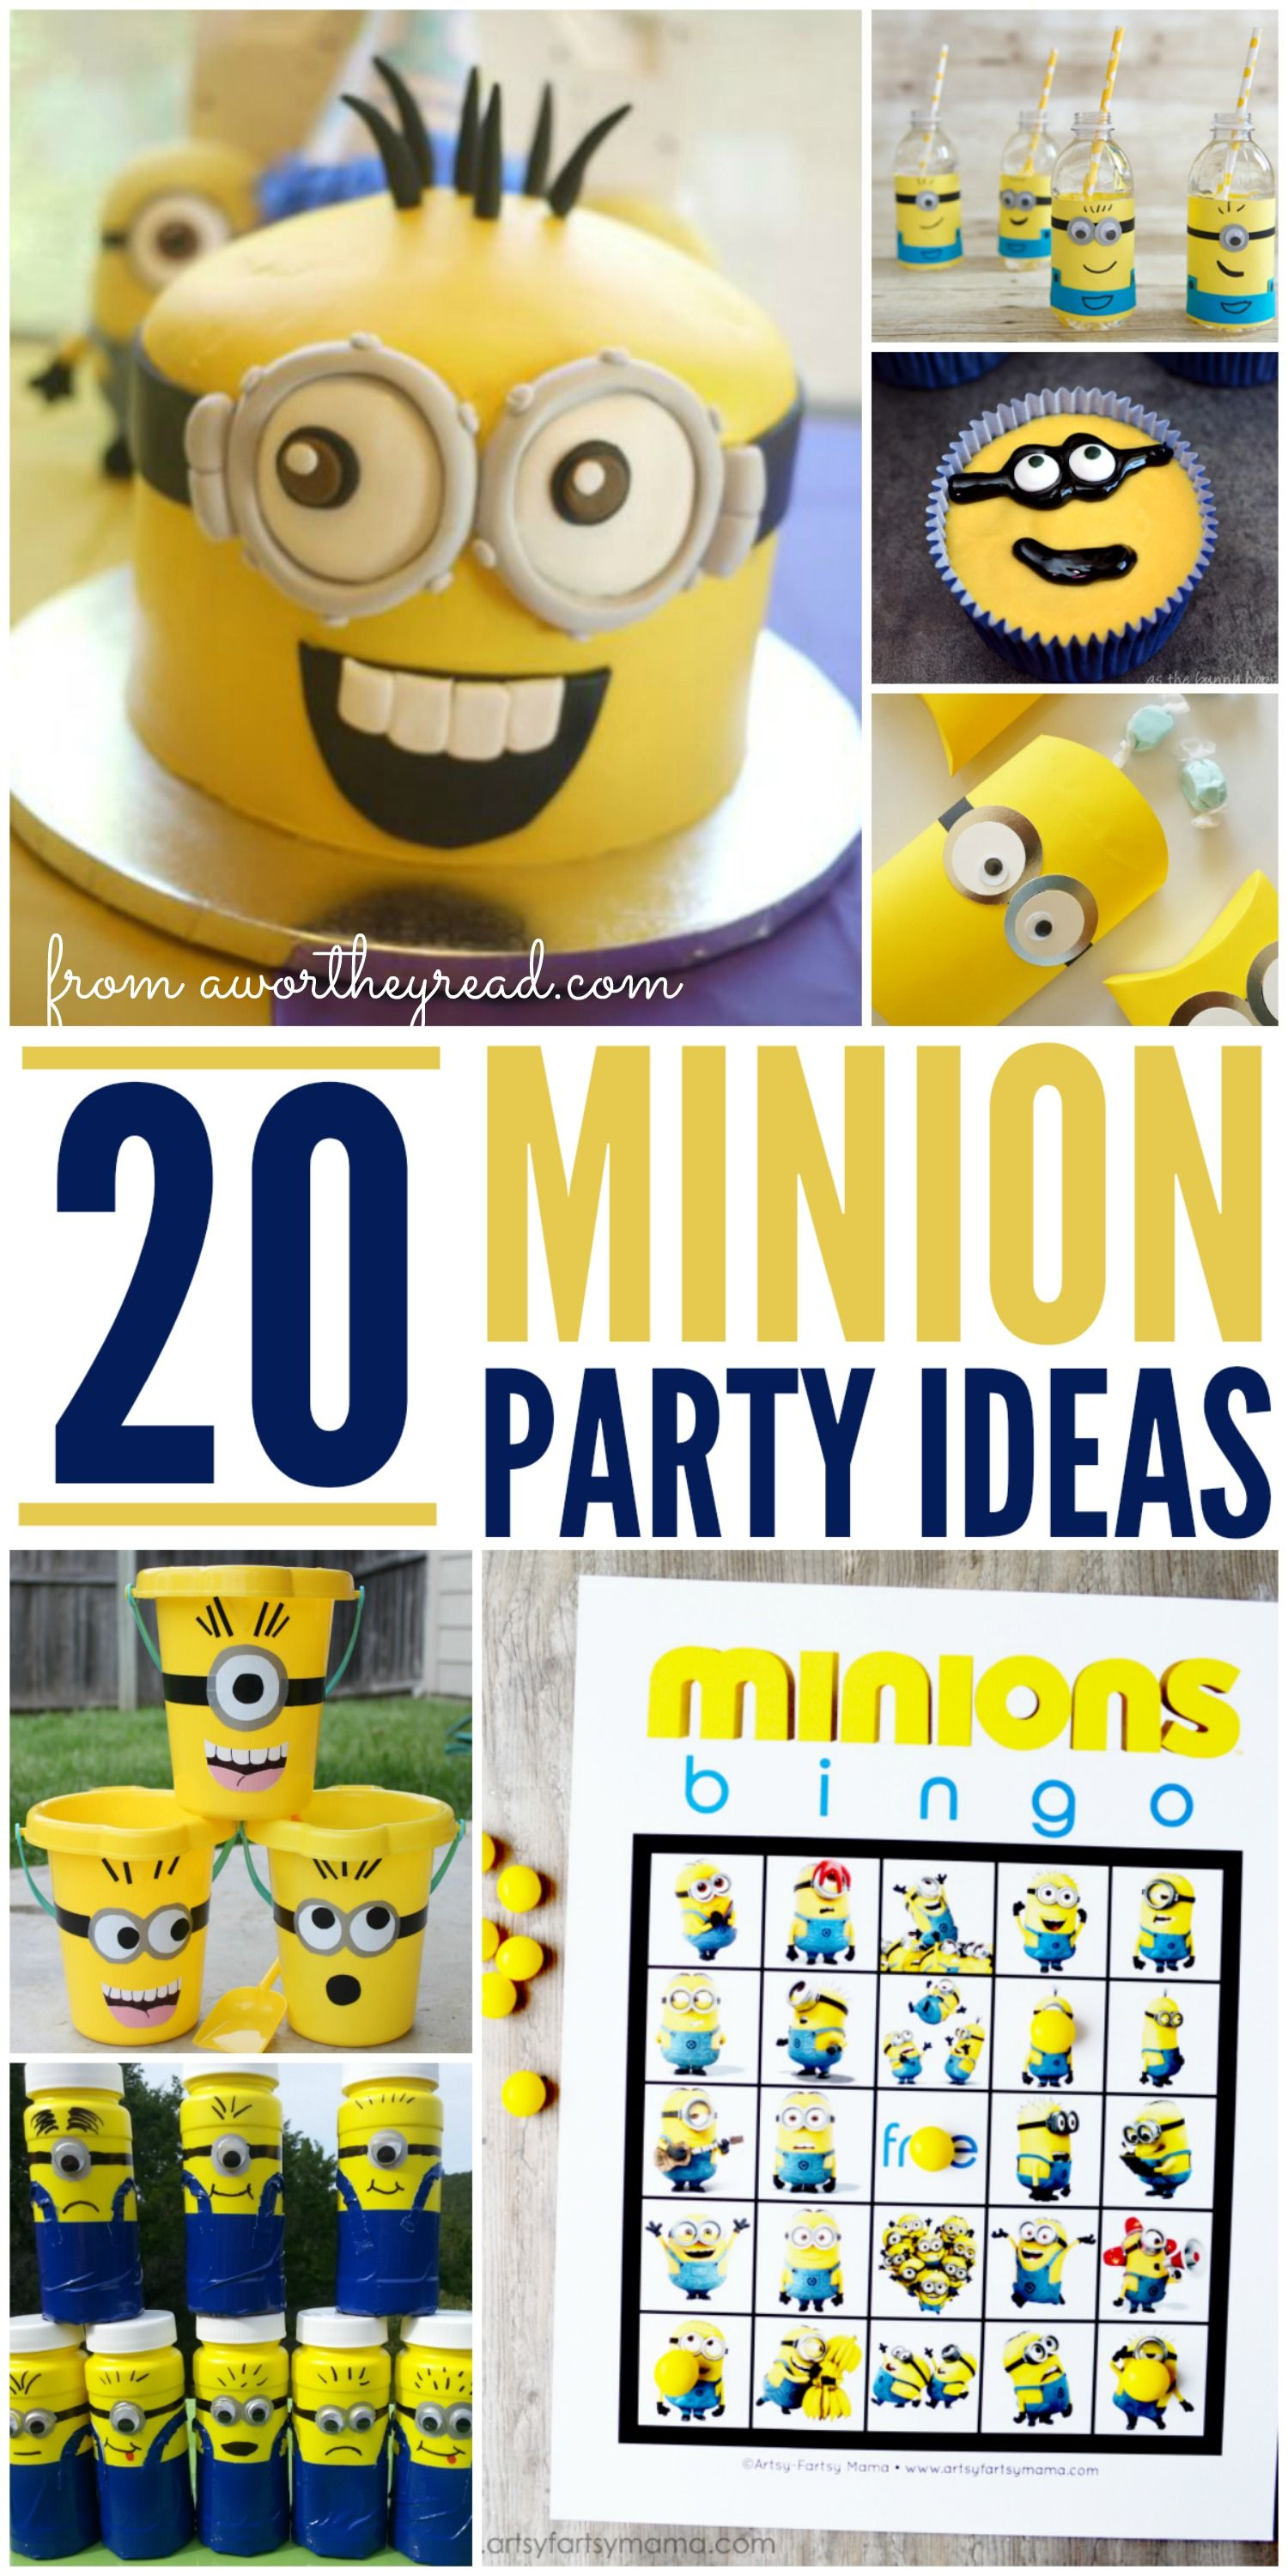 The New Minions Movie Hits Theaters Soon Are You Planning A Birthday Party With Minion Theme If So Heres 20 Ideas To Check